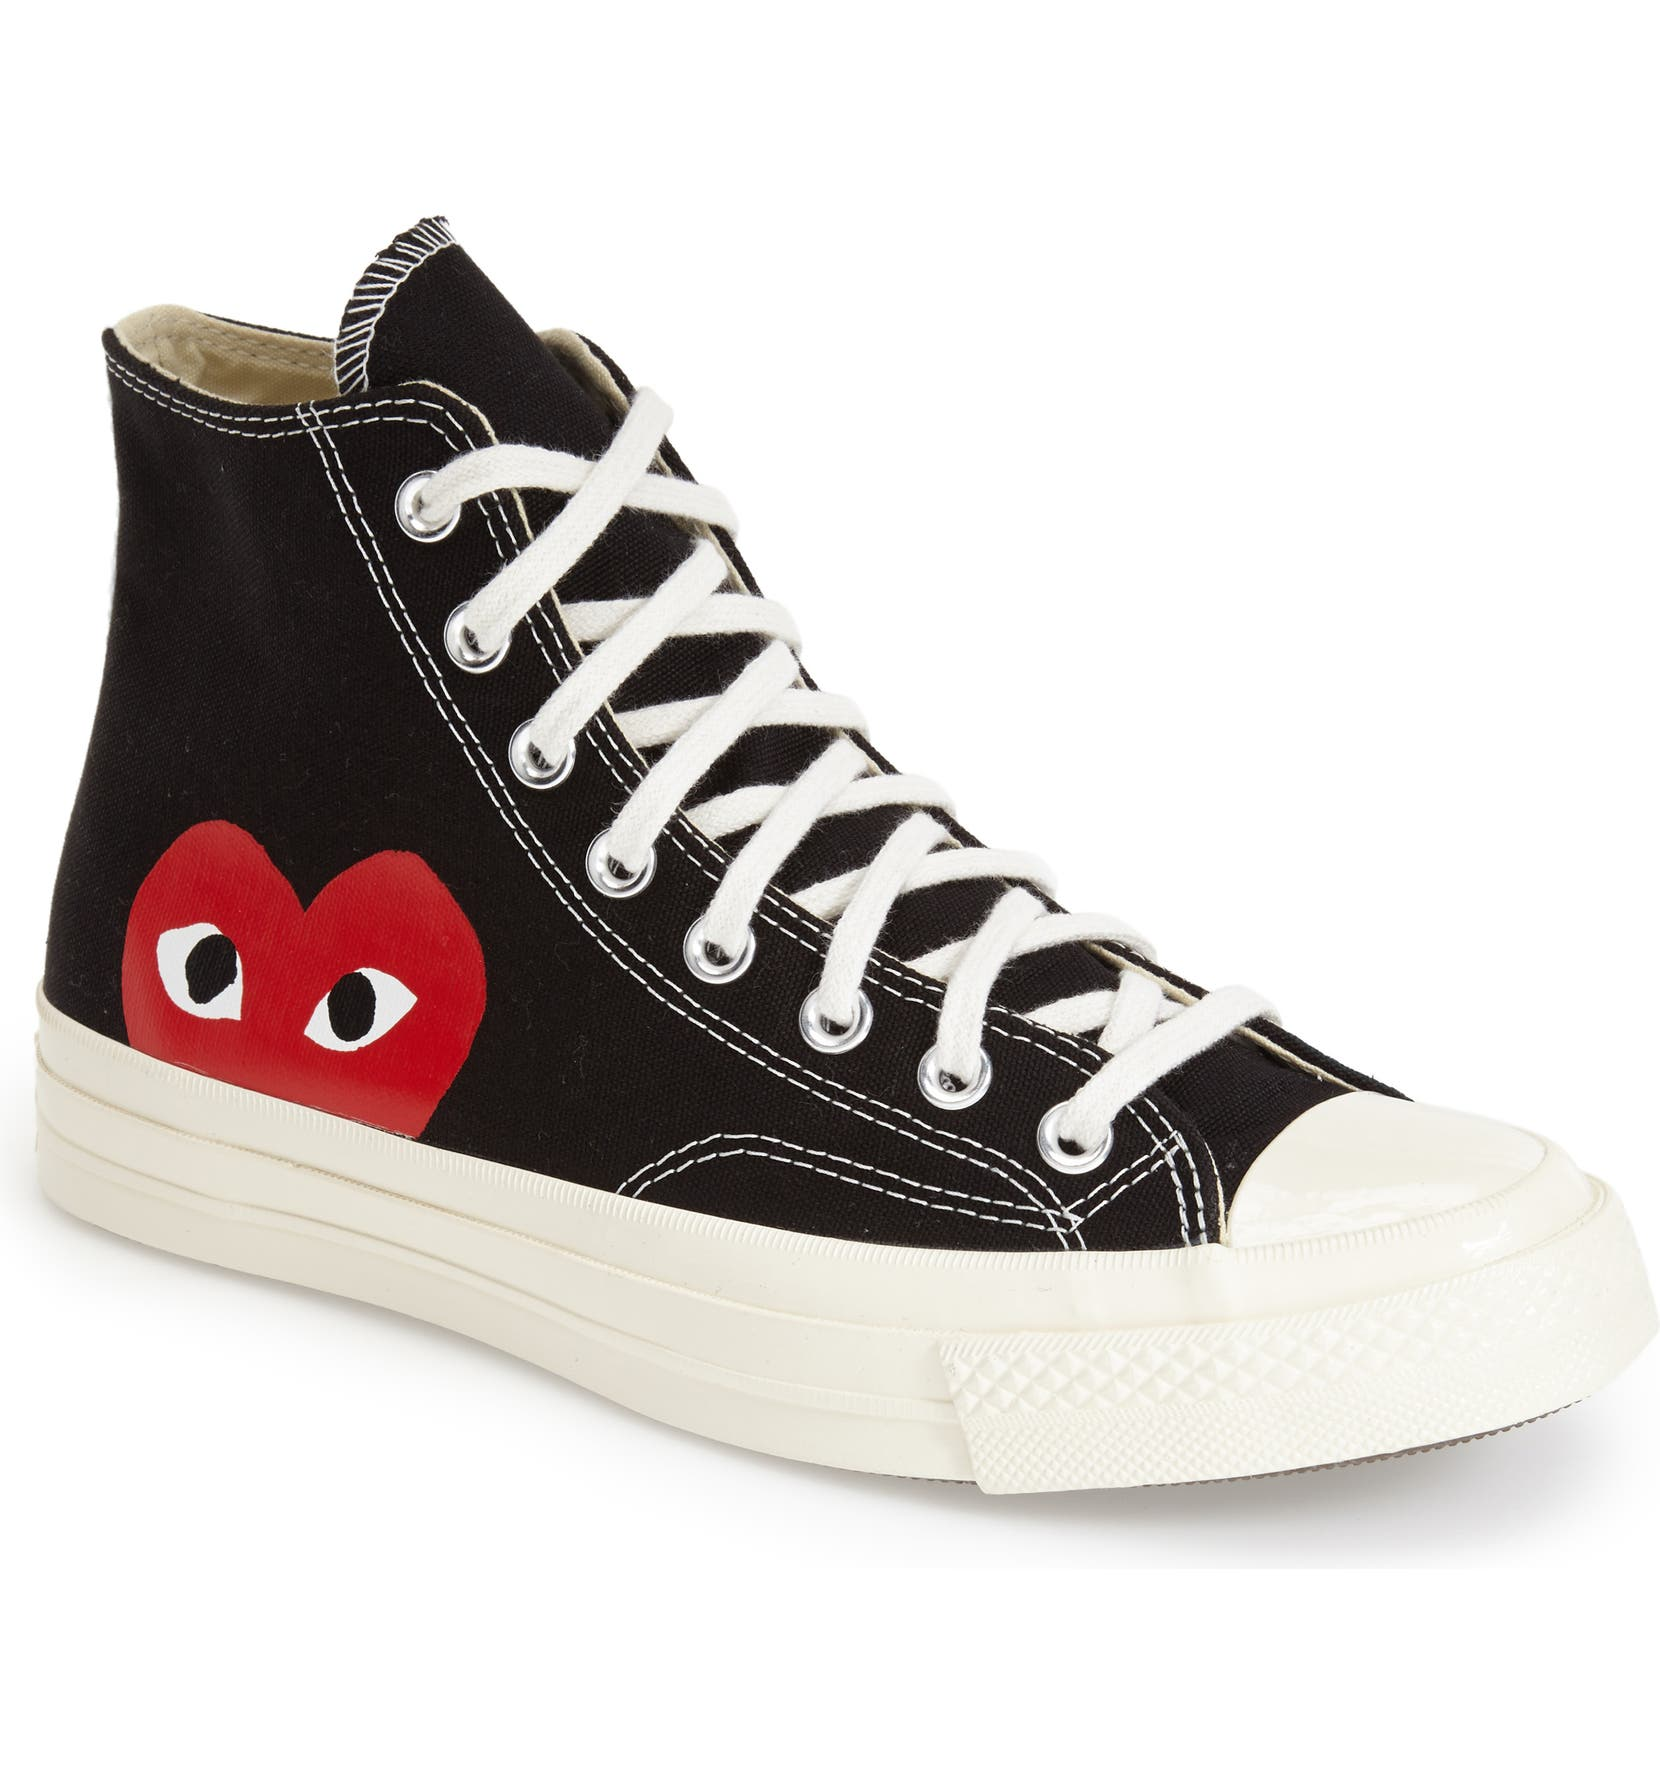 2c3f3dca3111 Comme des Garçons PLAY x Converse Chuck Taylor® Hidden Heart High Top  Sneaker (Men)